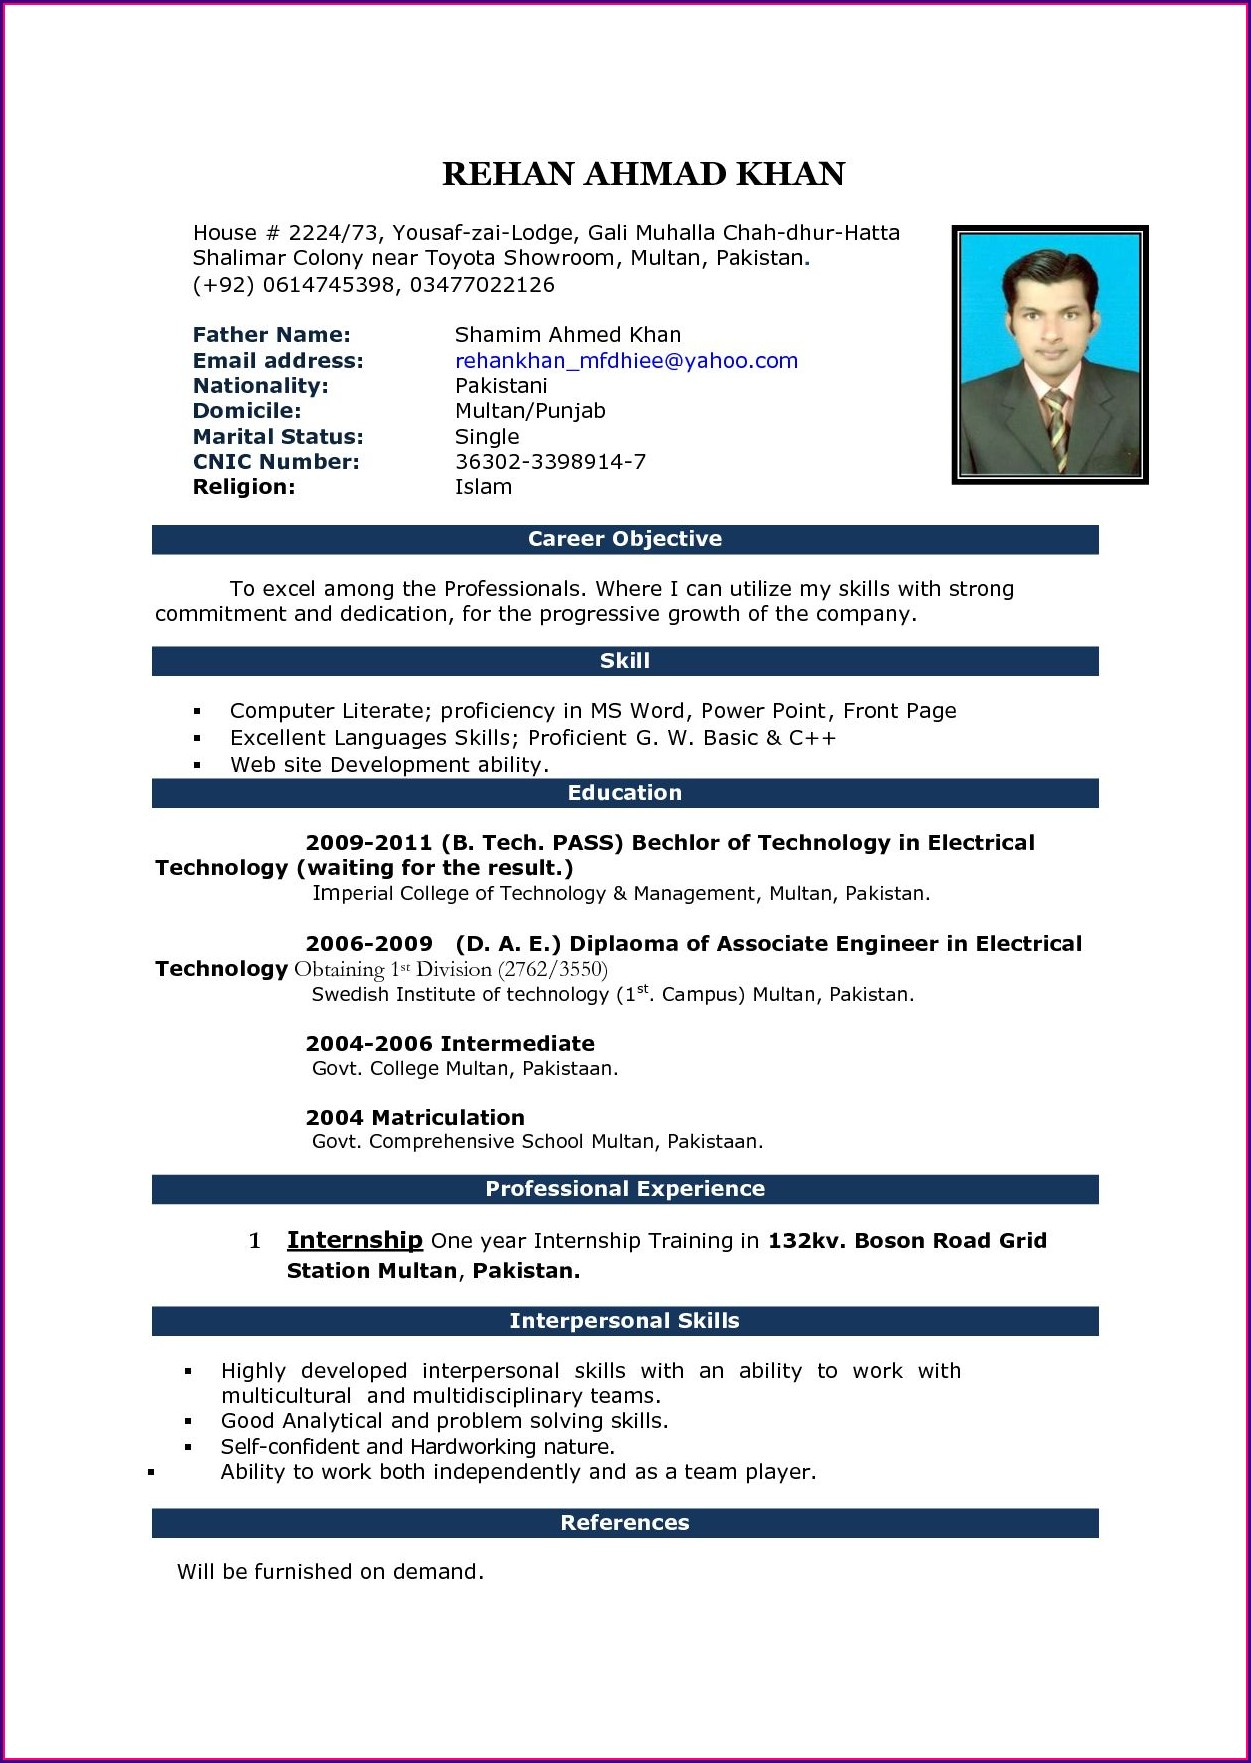 Indian Fresher Resume Format Download In Ms Word